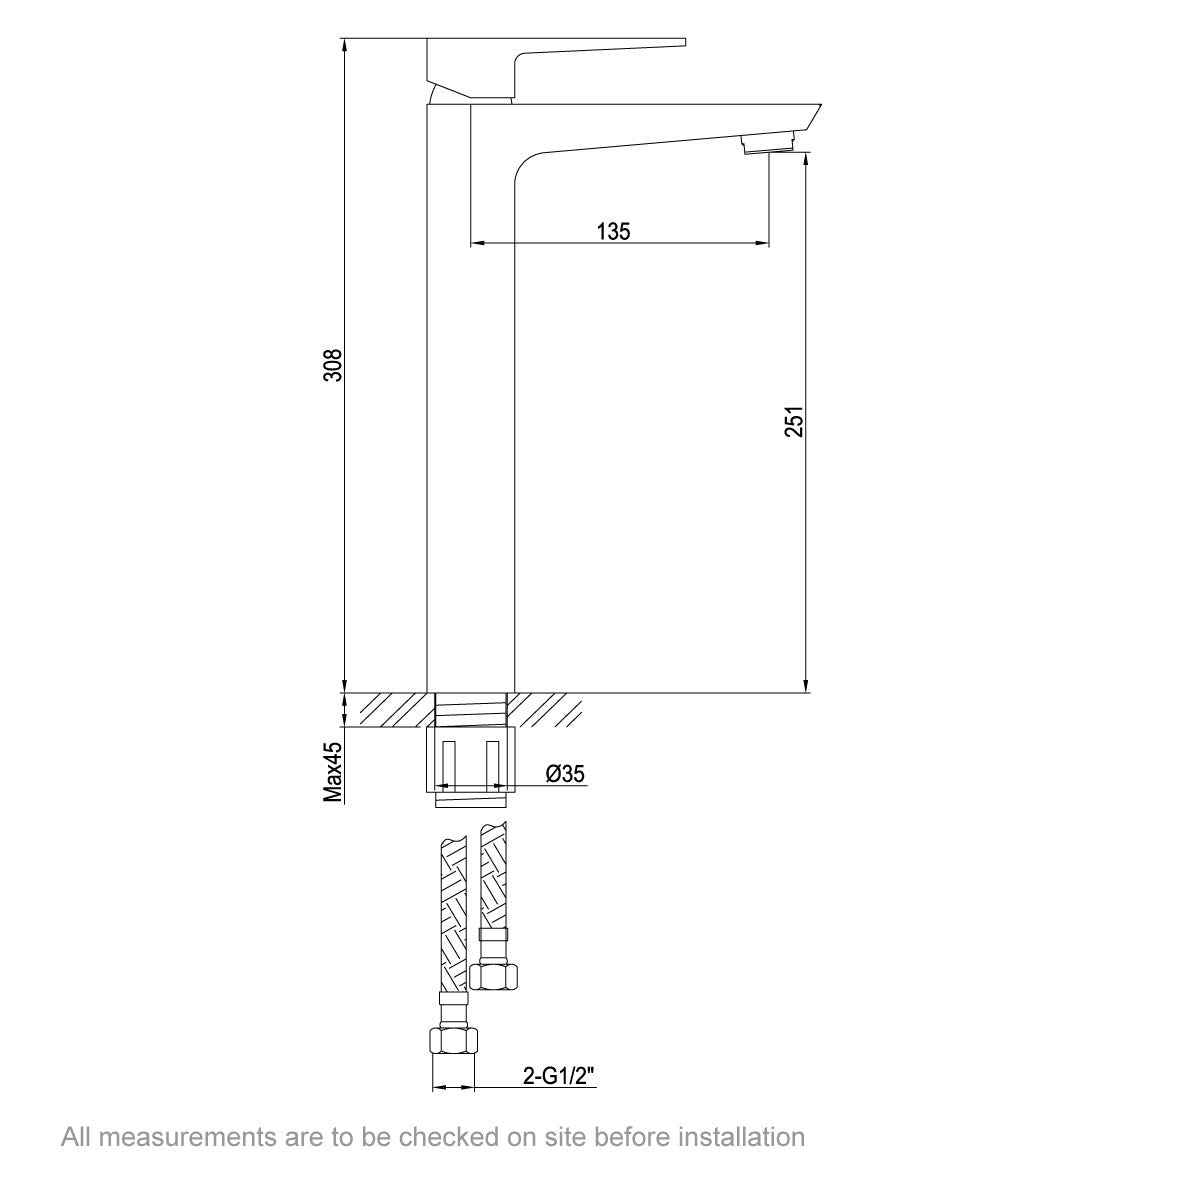 Dimensions for Mode Carter high rise basin mixer tap